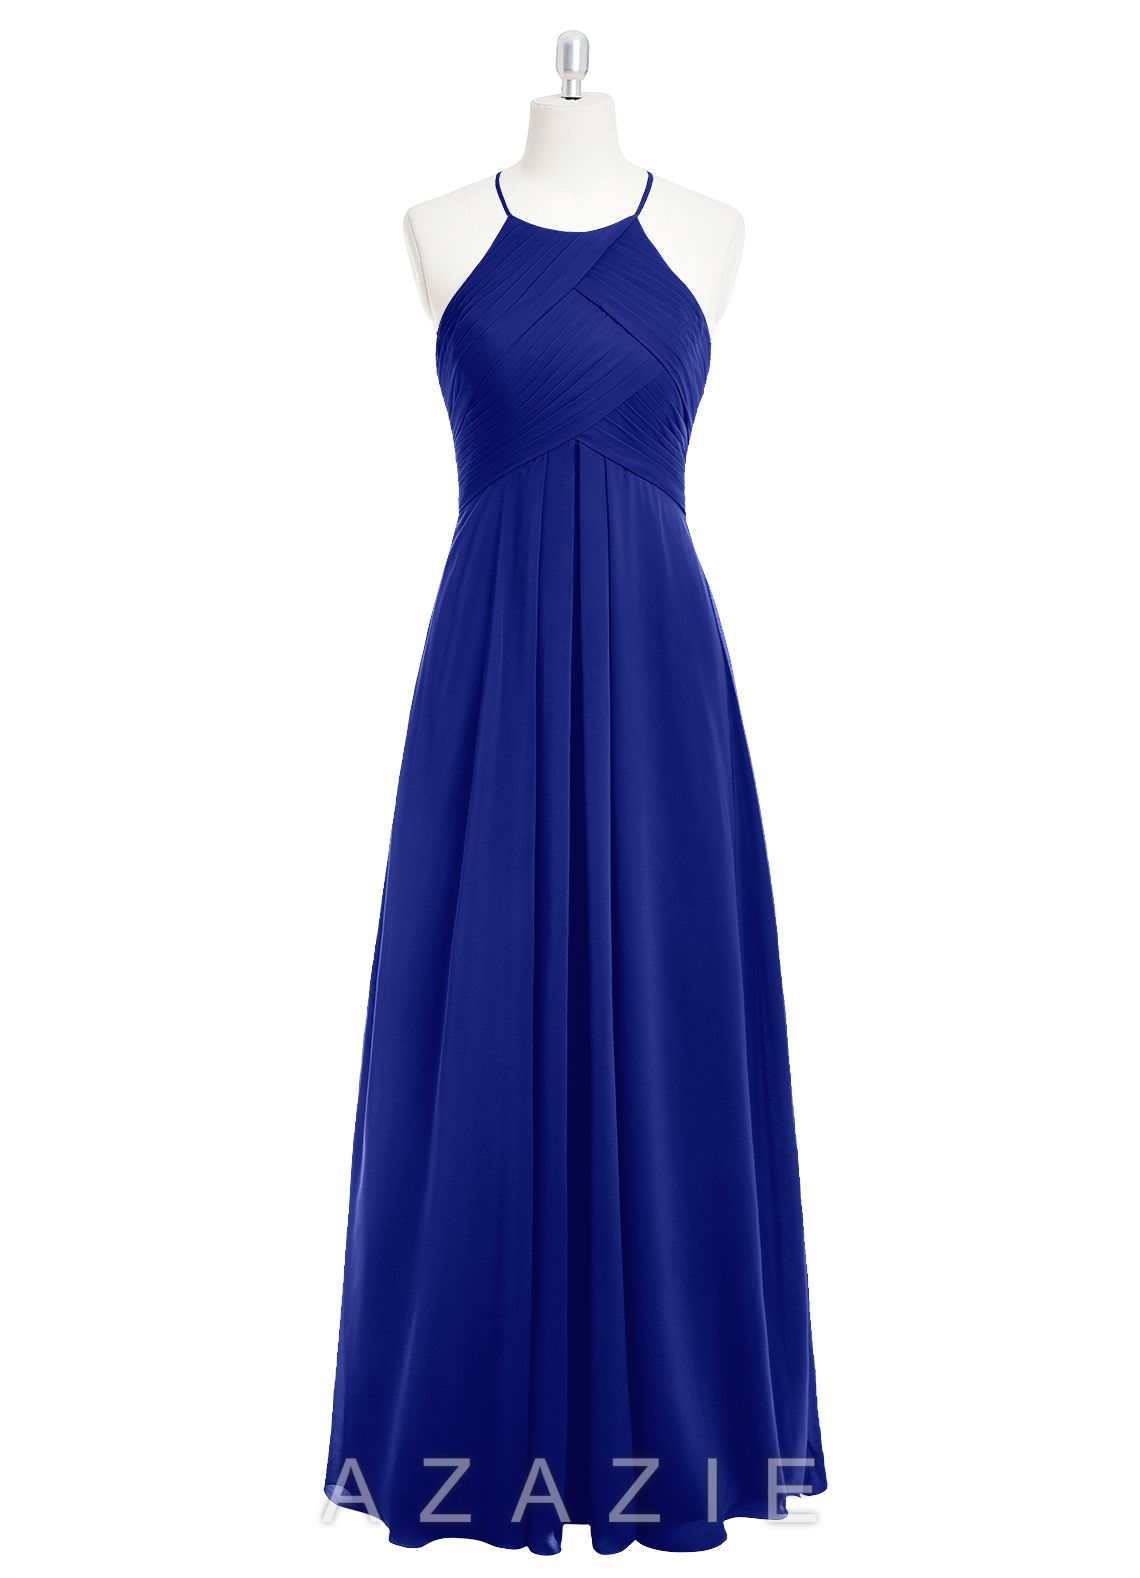 1b8b8242b30 Shop Azazie Bridesmaid Dress - Ginger in Chiffon. Find the perfect  made-to-order bridesmaid dresses for your bridal party in your favorite  color